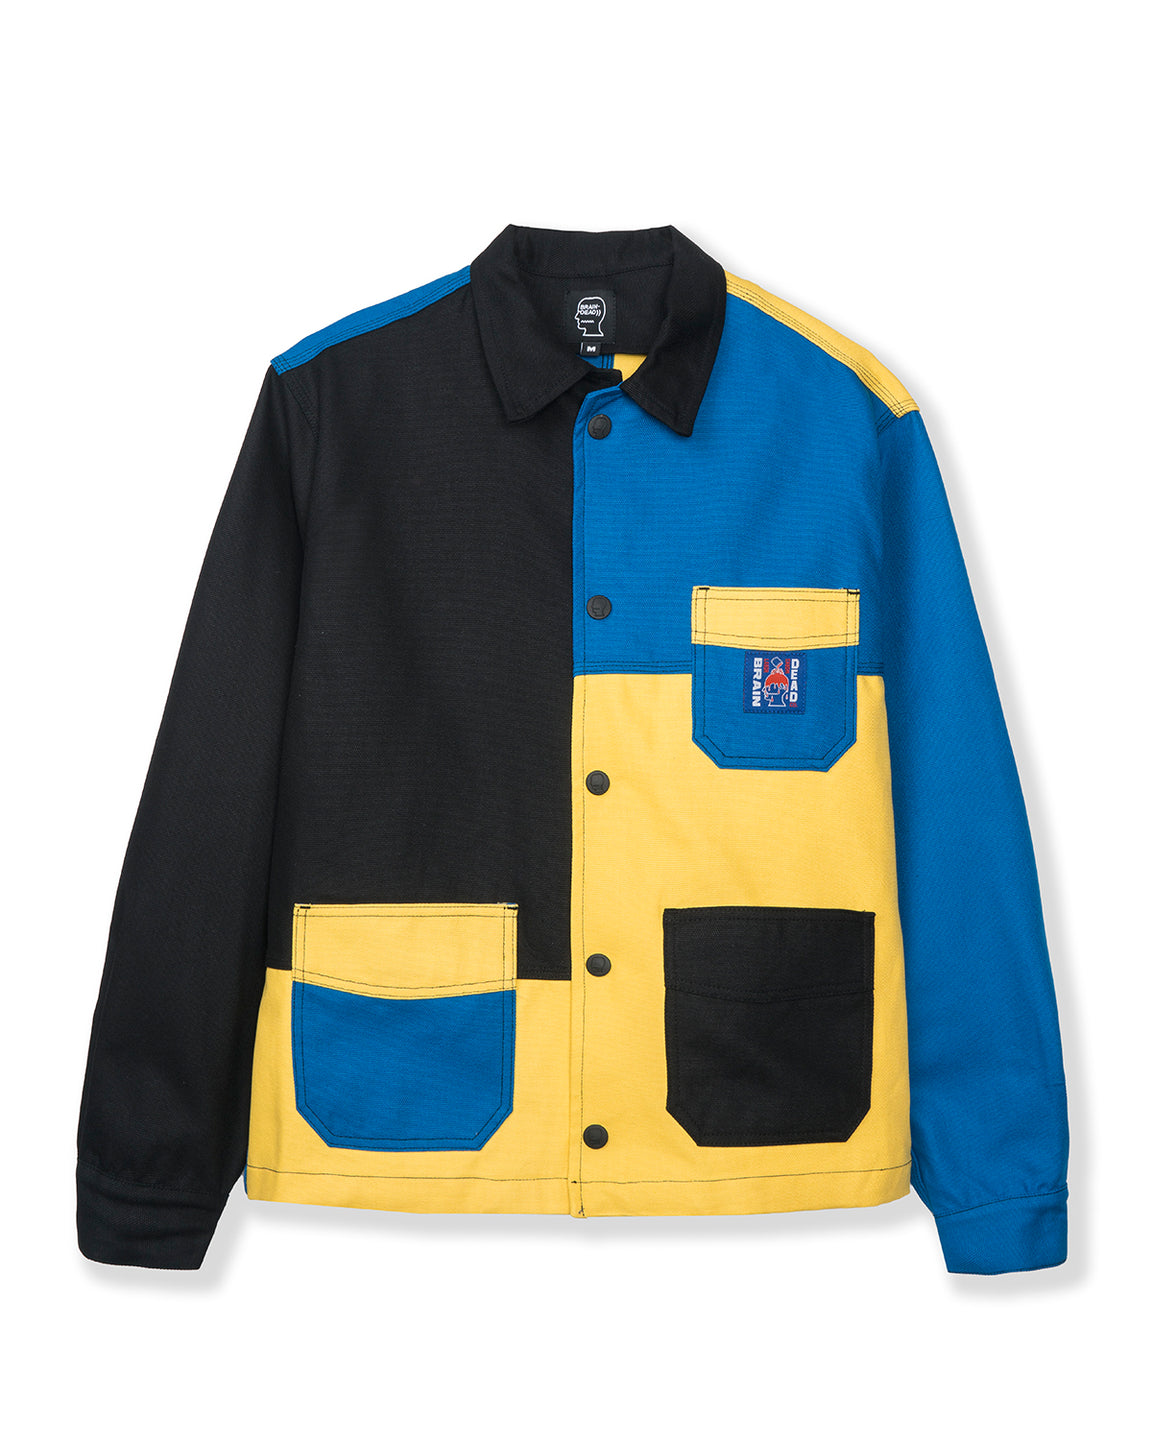 Colorblocked Canvas Chore Coat - Yellow/Blue/Black